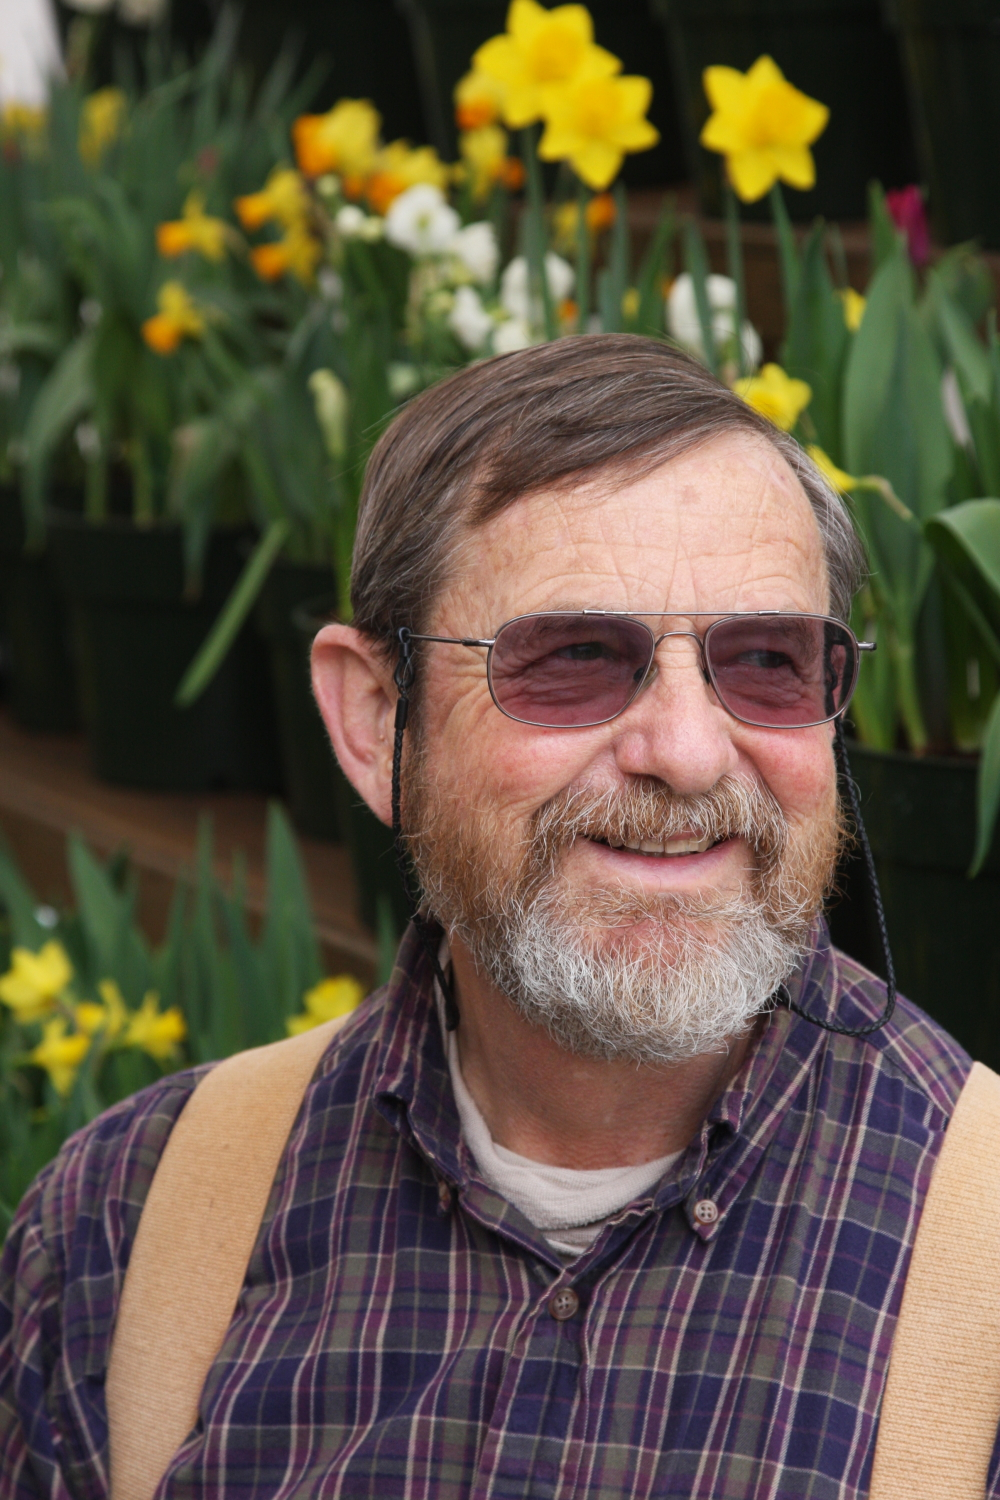 One of his greatest joys is sharing his love of all things natural and inspiring people to look at the world around them in different, eye-opening ways. Brent Heath of Brent and Becky's Bulbs in Virginia will be in Granville during Garden Day and the Daffodil Show for a workshop and talk.